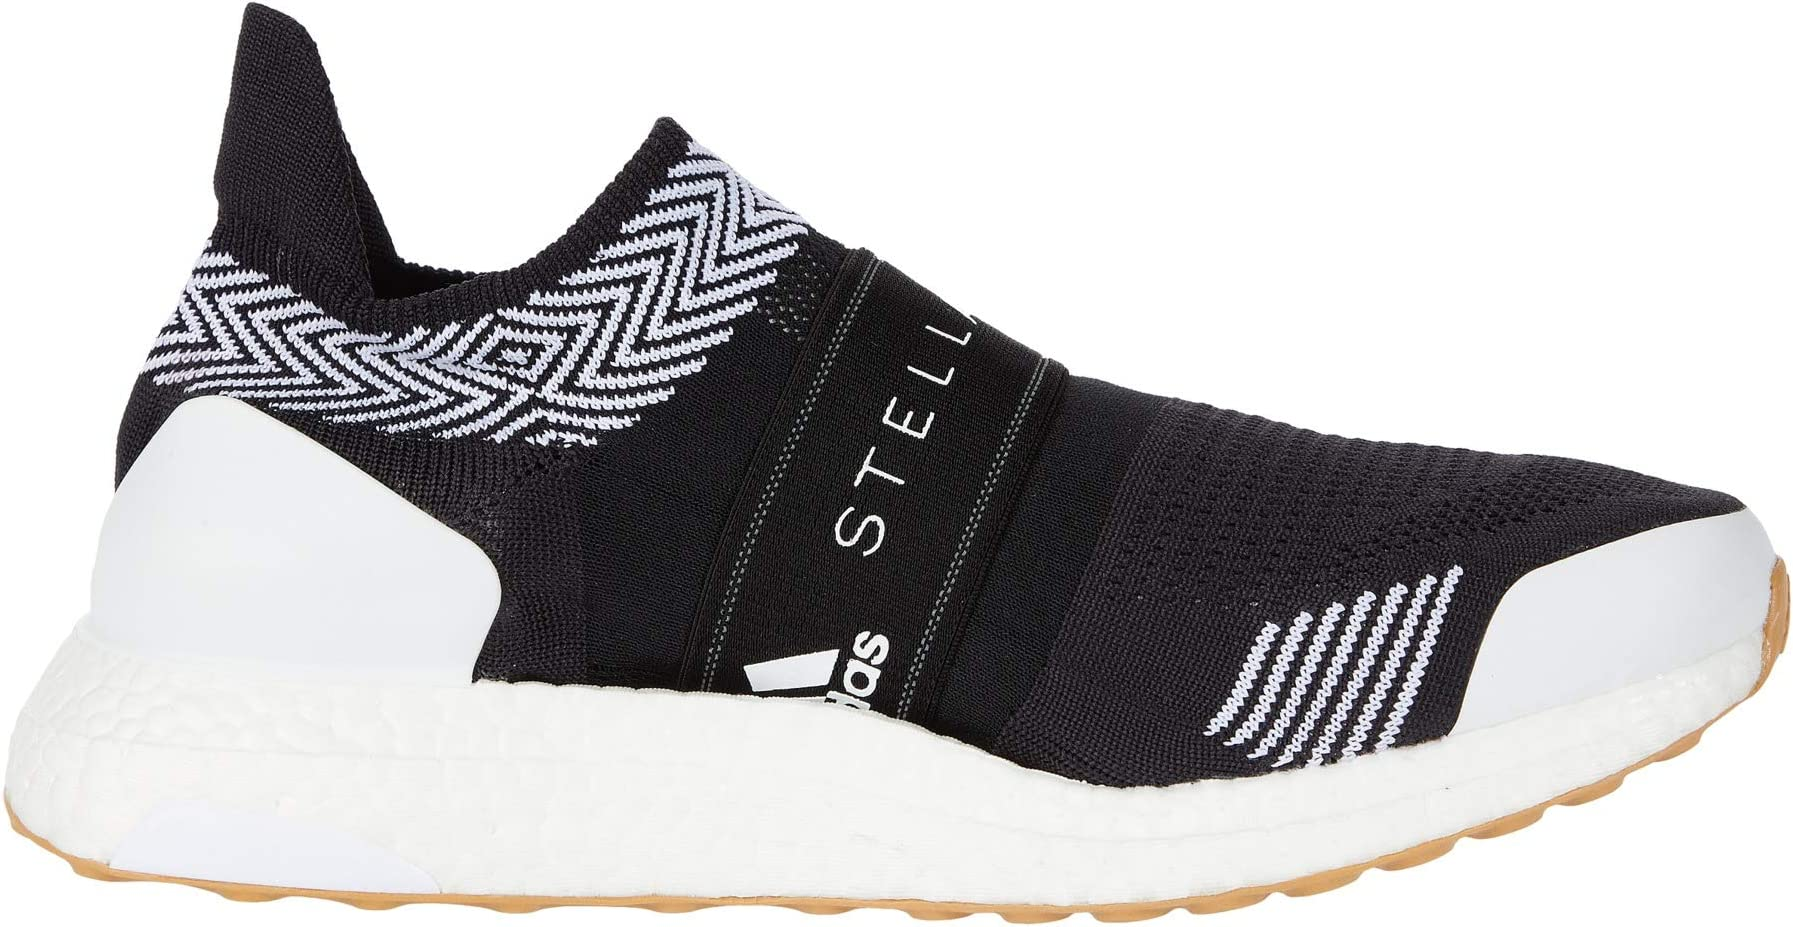 adidas by Stella McCartney Ultraboost X 3.D.S. Sneaker | The Style Room, powered by Zappos